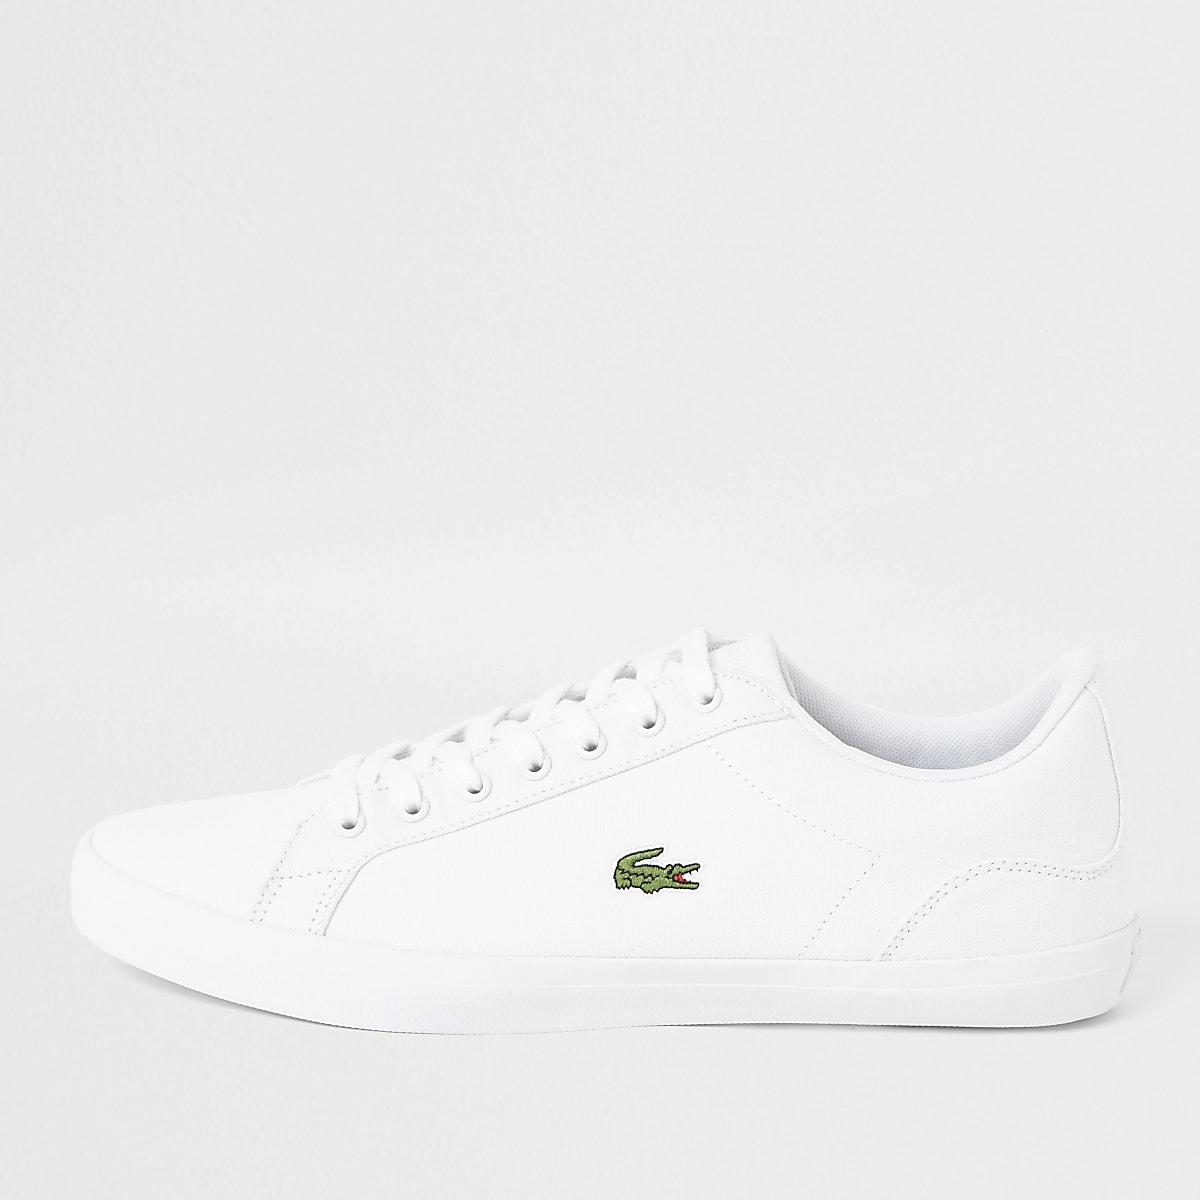 eea06db6faa2 Lacoste white Lerond canvas trainers - Trainers - Shoes   Boots - men